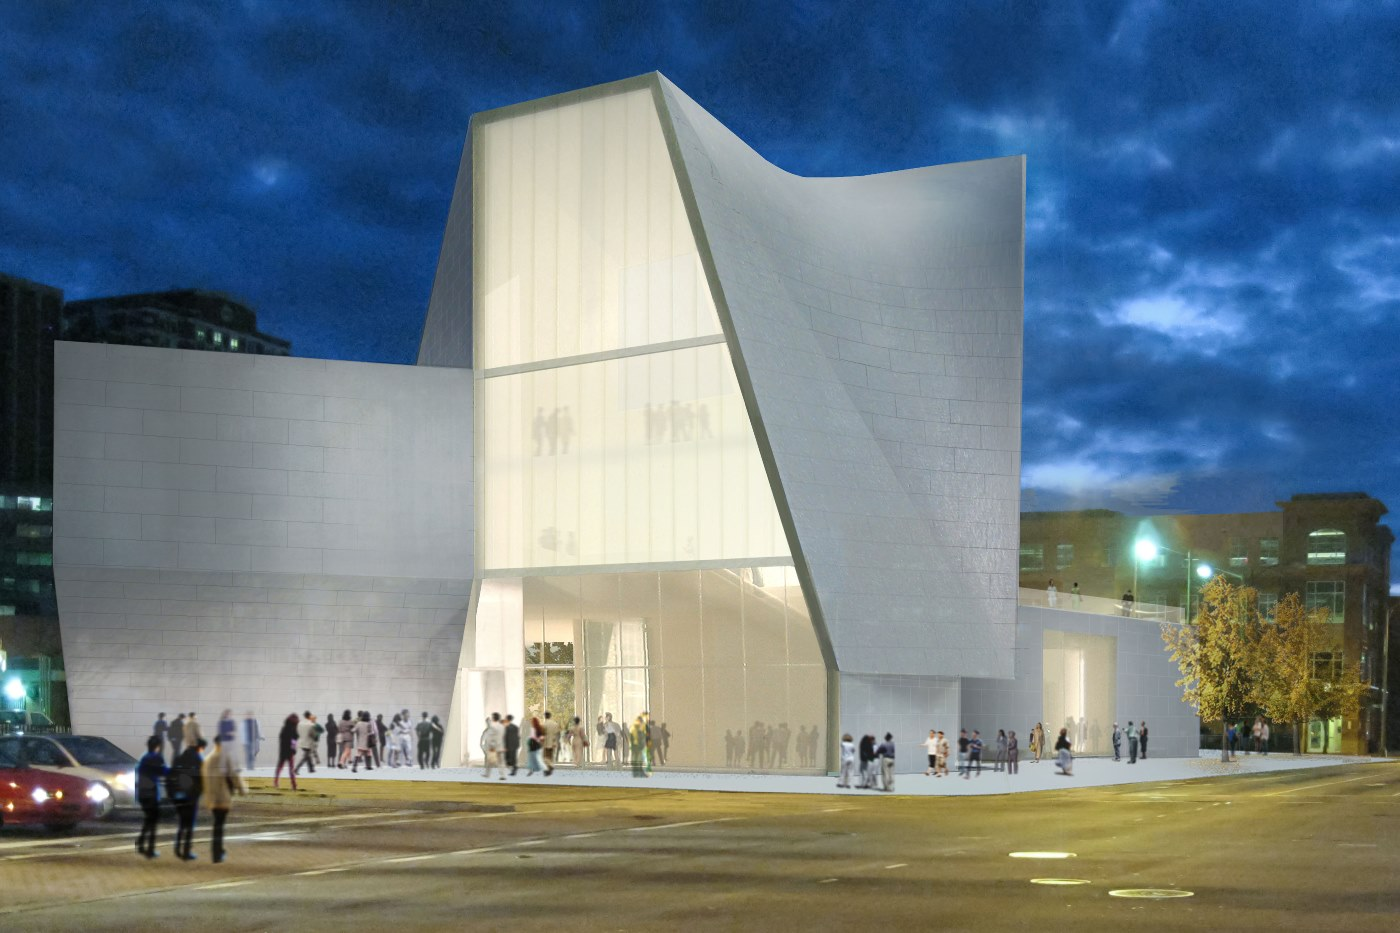 Rendering of the exterior of VCU's Institute for Contemporary Art in Richmond, VA. Designed by Steven Holl Architects, the ICA is scheduled to open in 2016. Image courtesy of Steven Holl Architects.